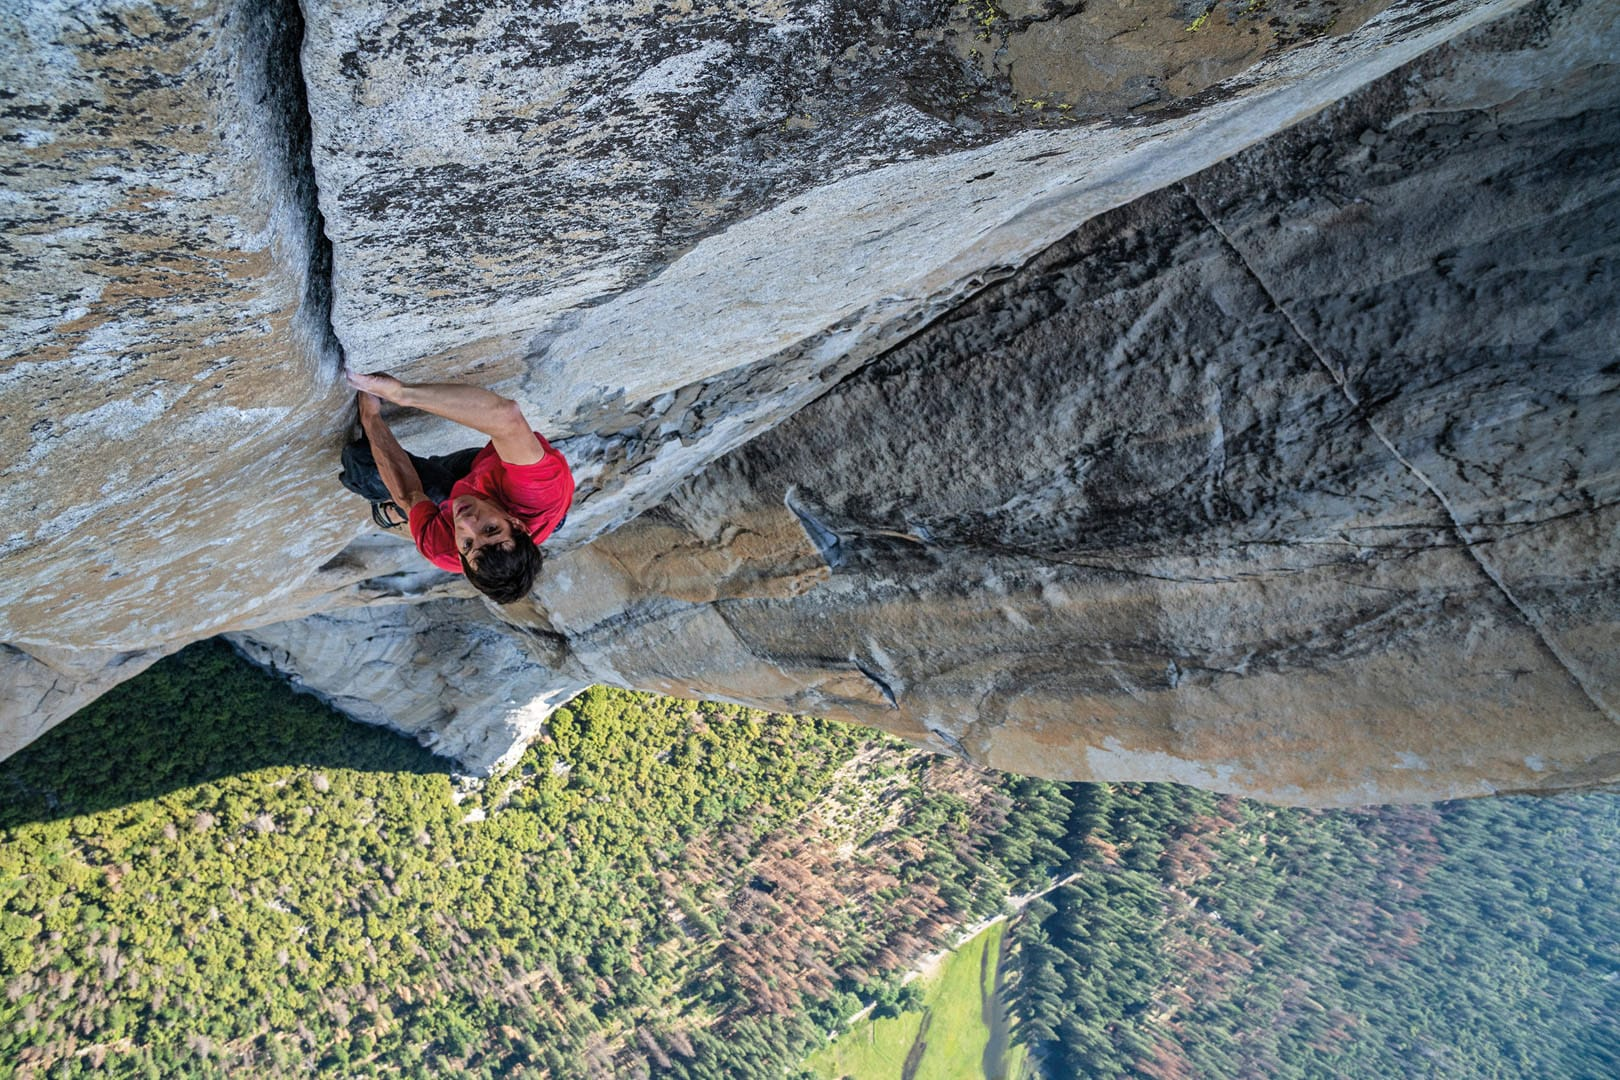 Monday 08.04.19. – 8pm: Free Solo